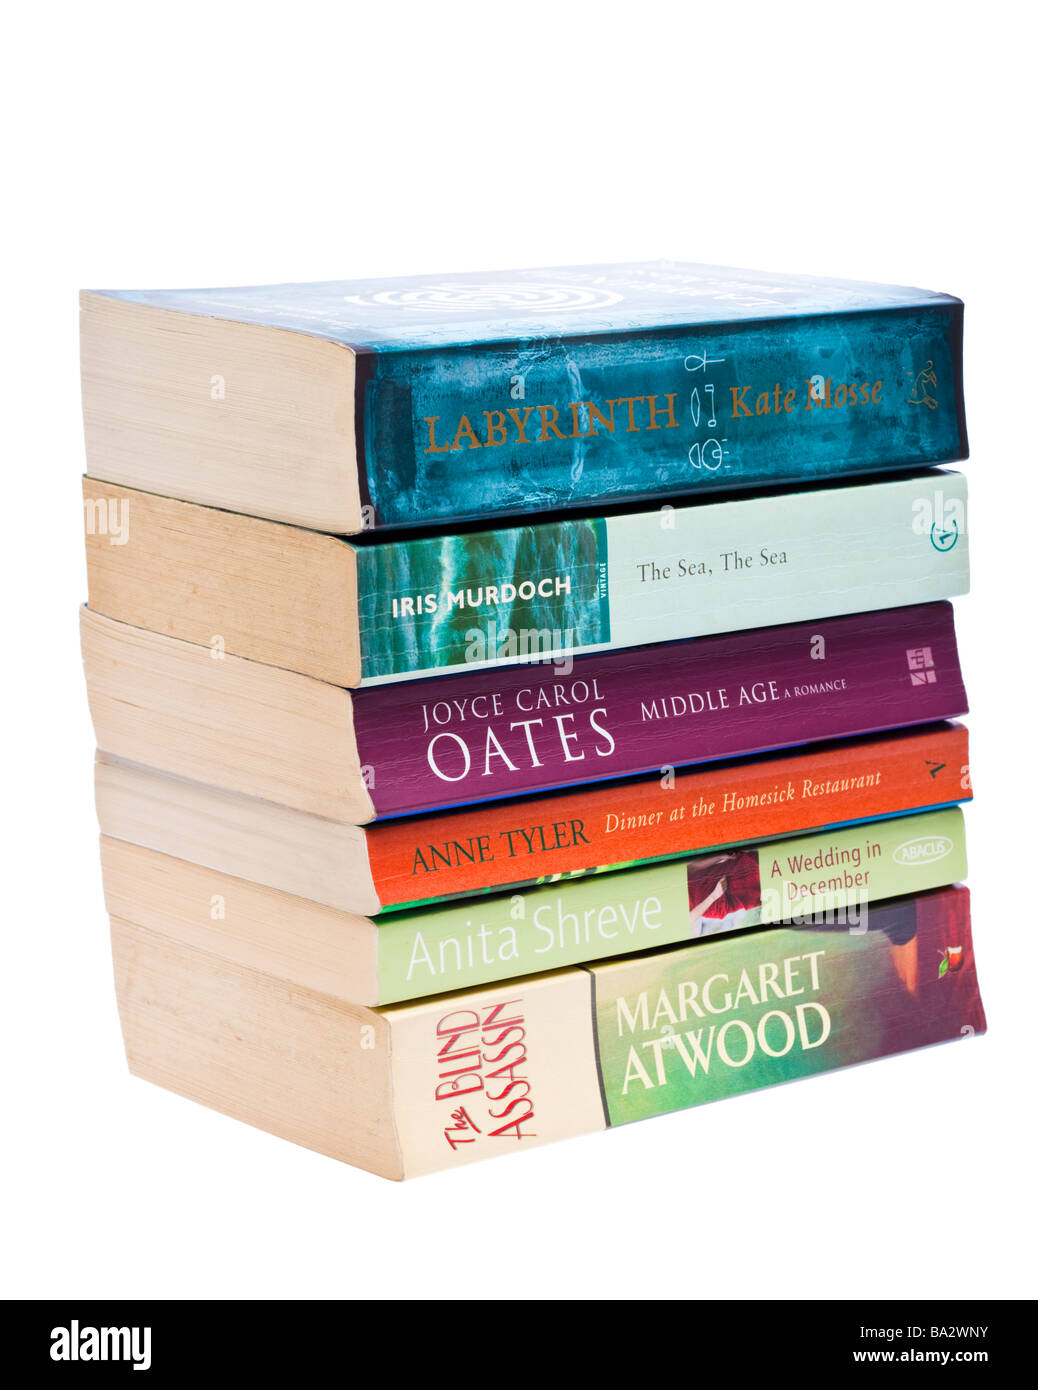 Stack of literary fiction books by female authors - Stock Image